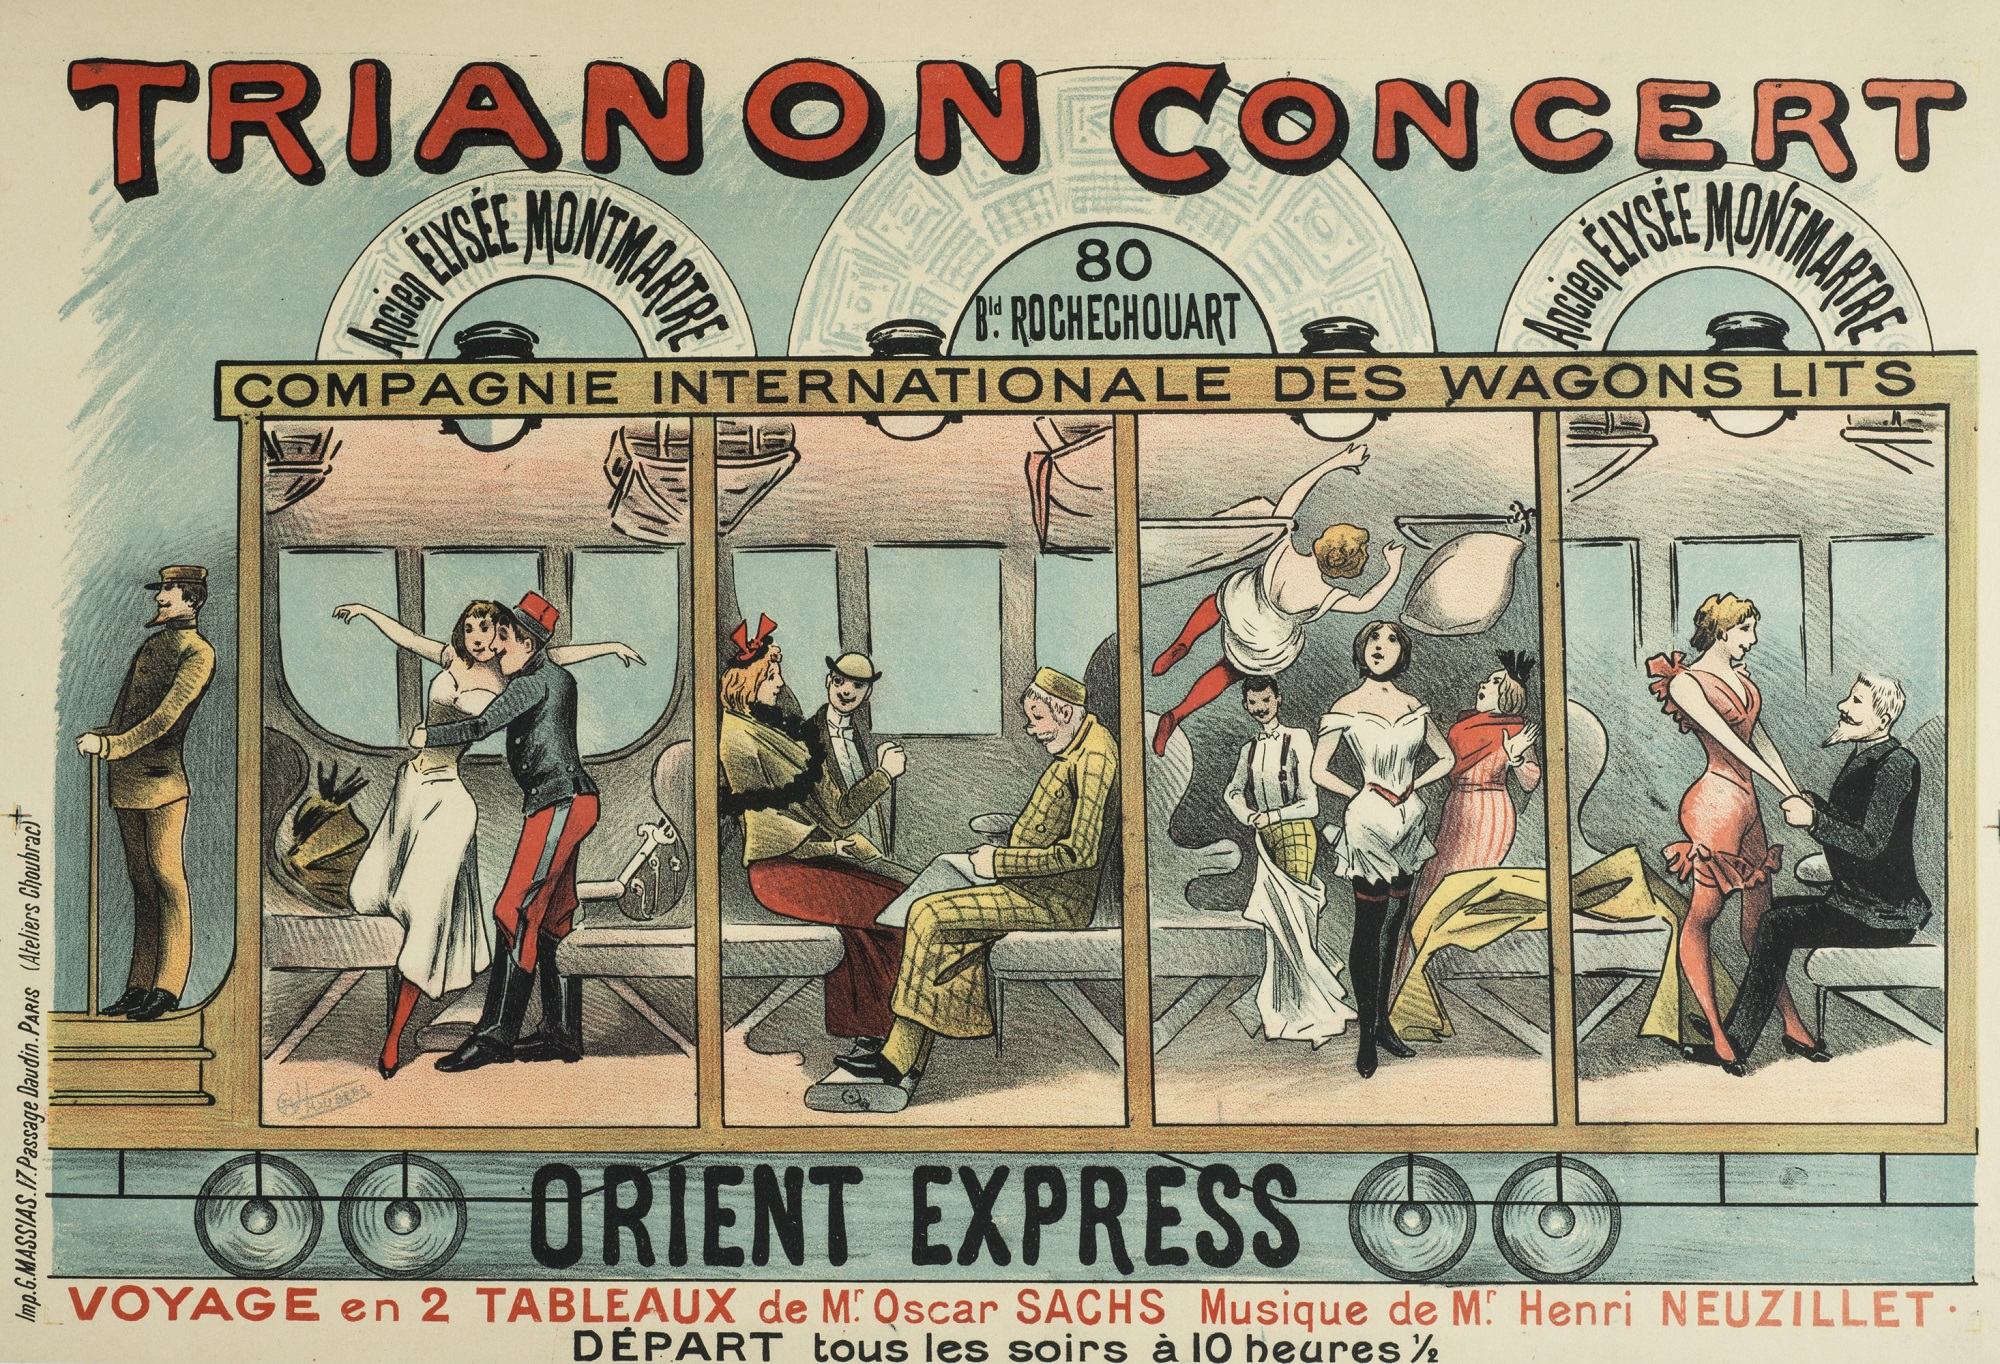 Advertisement for the Orient Express show